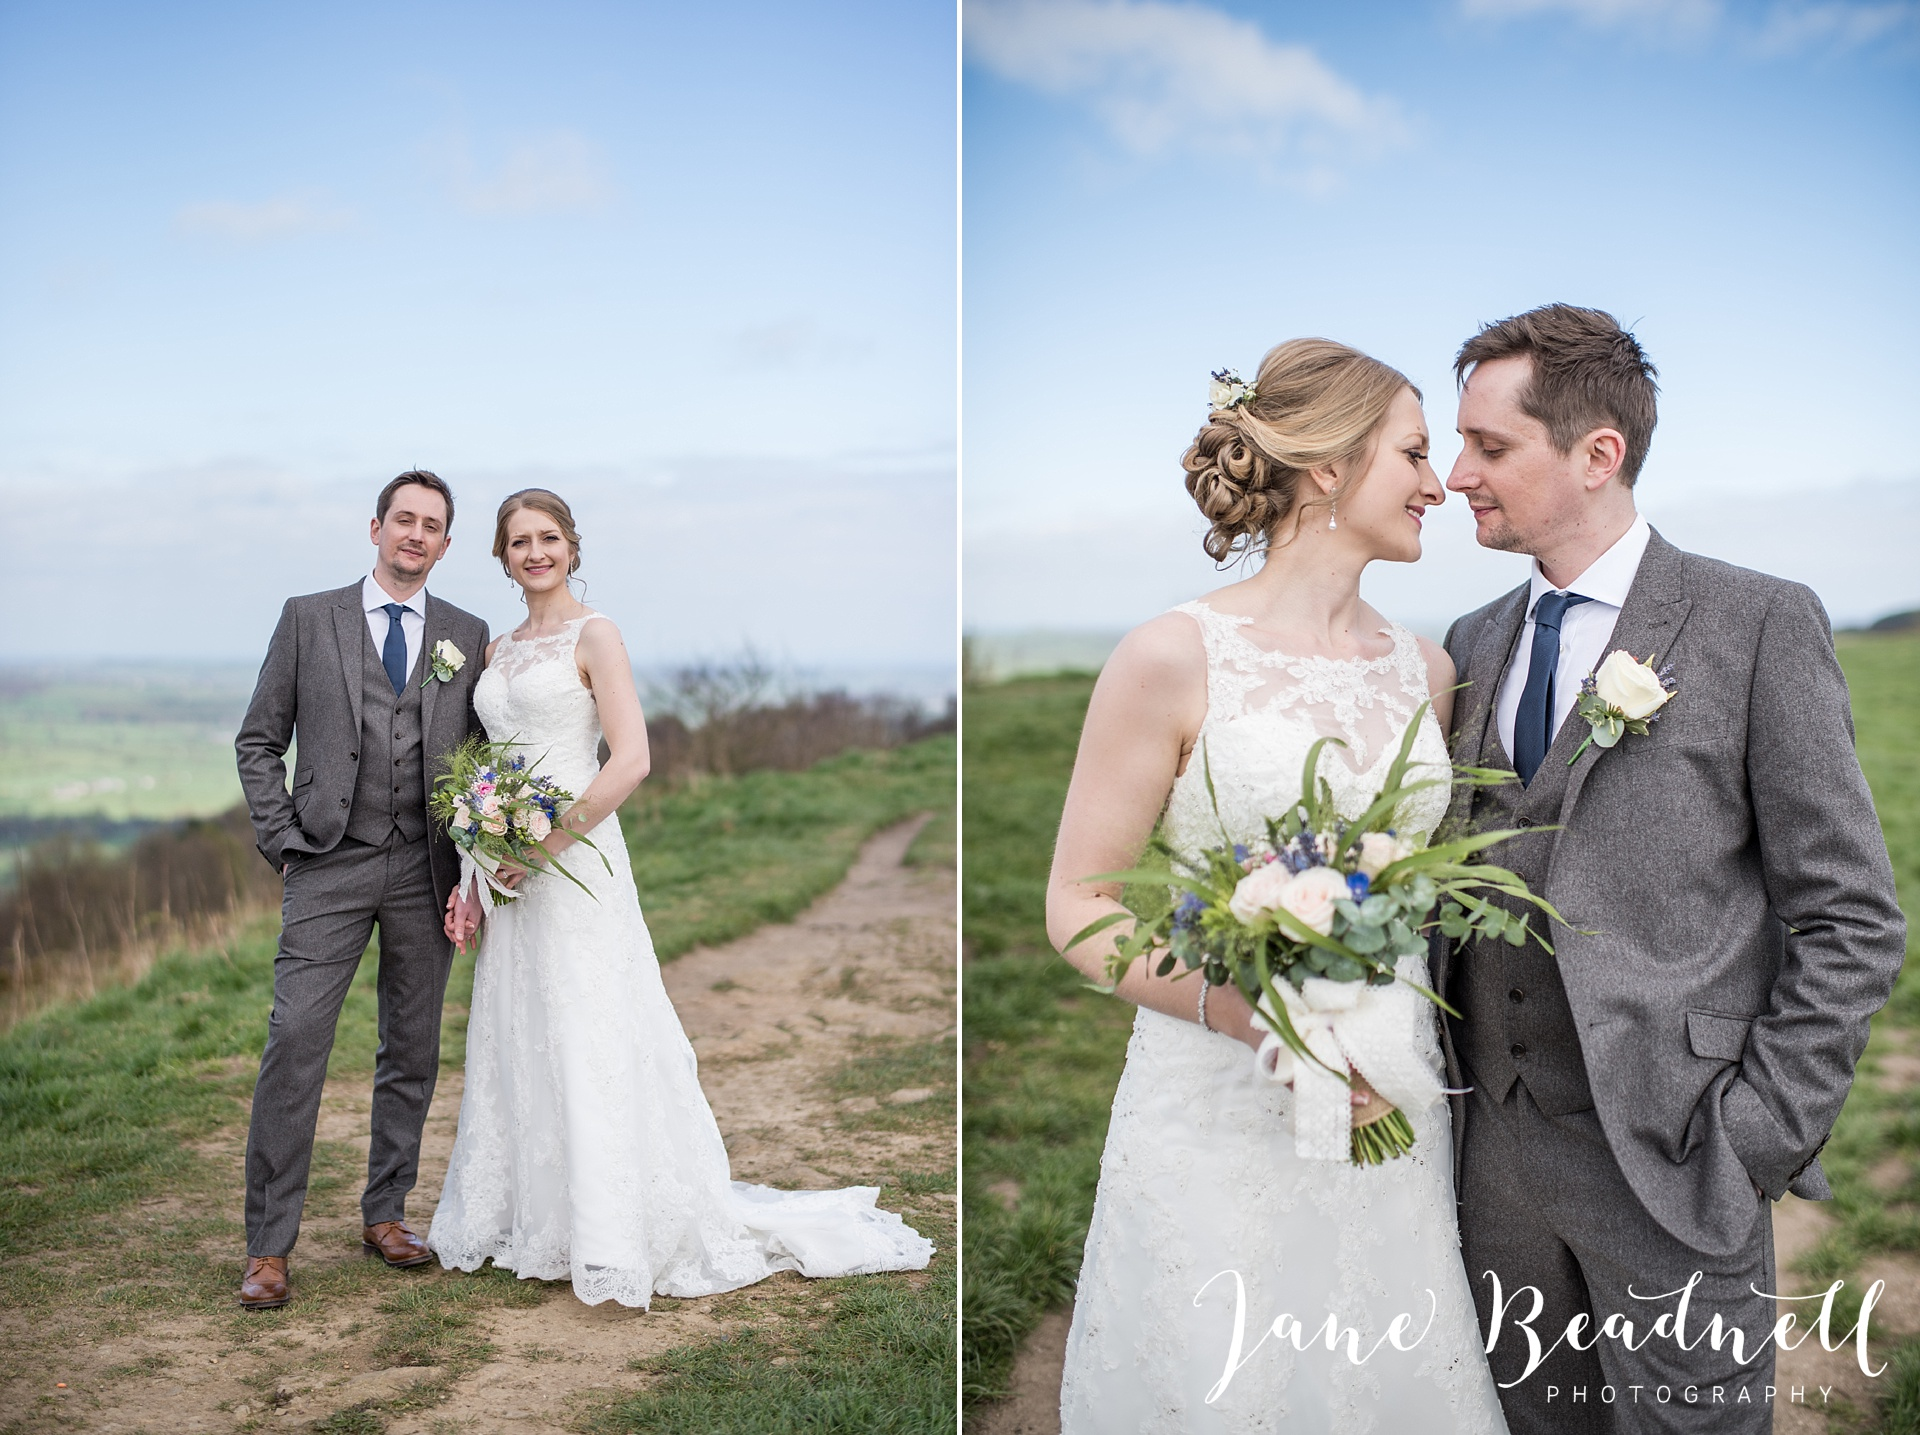 Otley Chevin Lodge wedding photography by Jane Beadnell Photography Leeds_0108